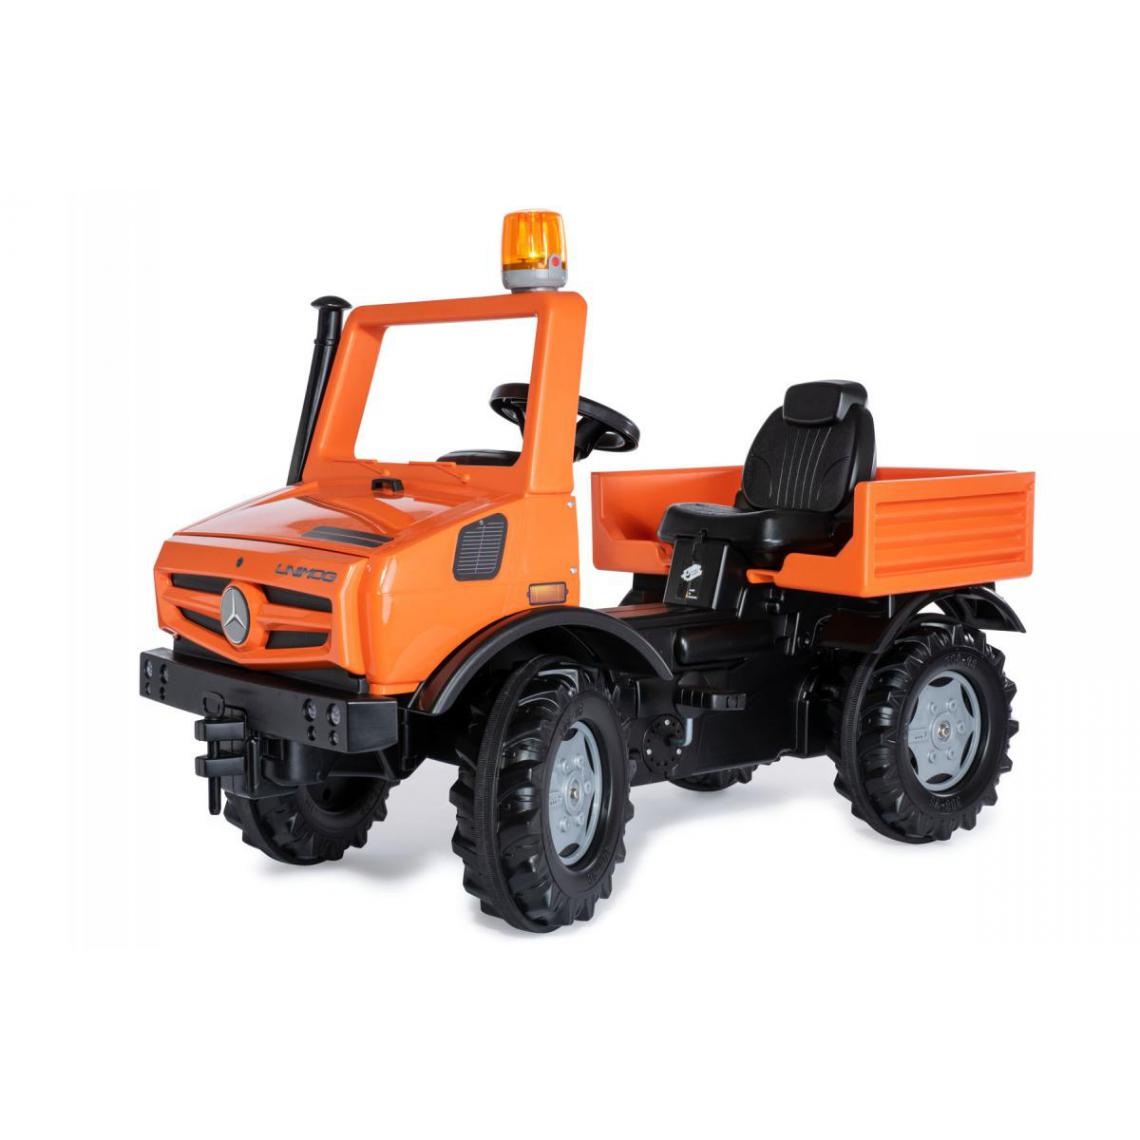 Rolly Toys Rolly Toys Tracteur a pédales service rollyUnimog